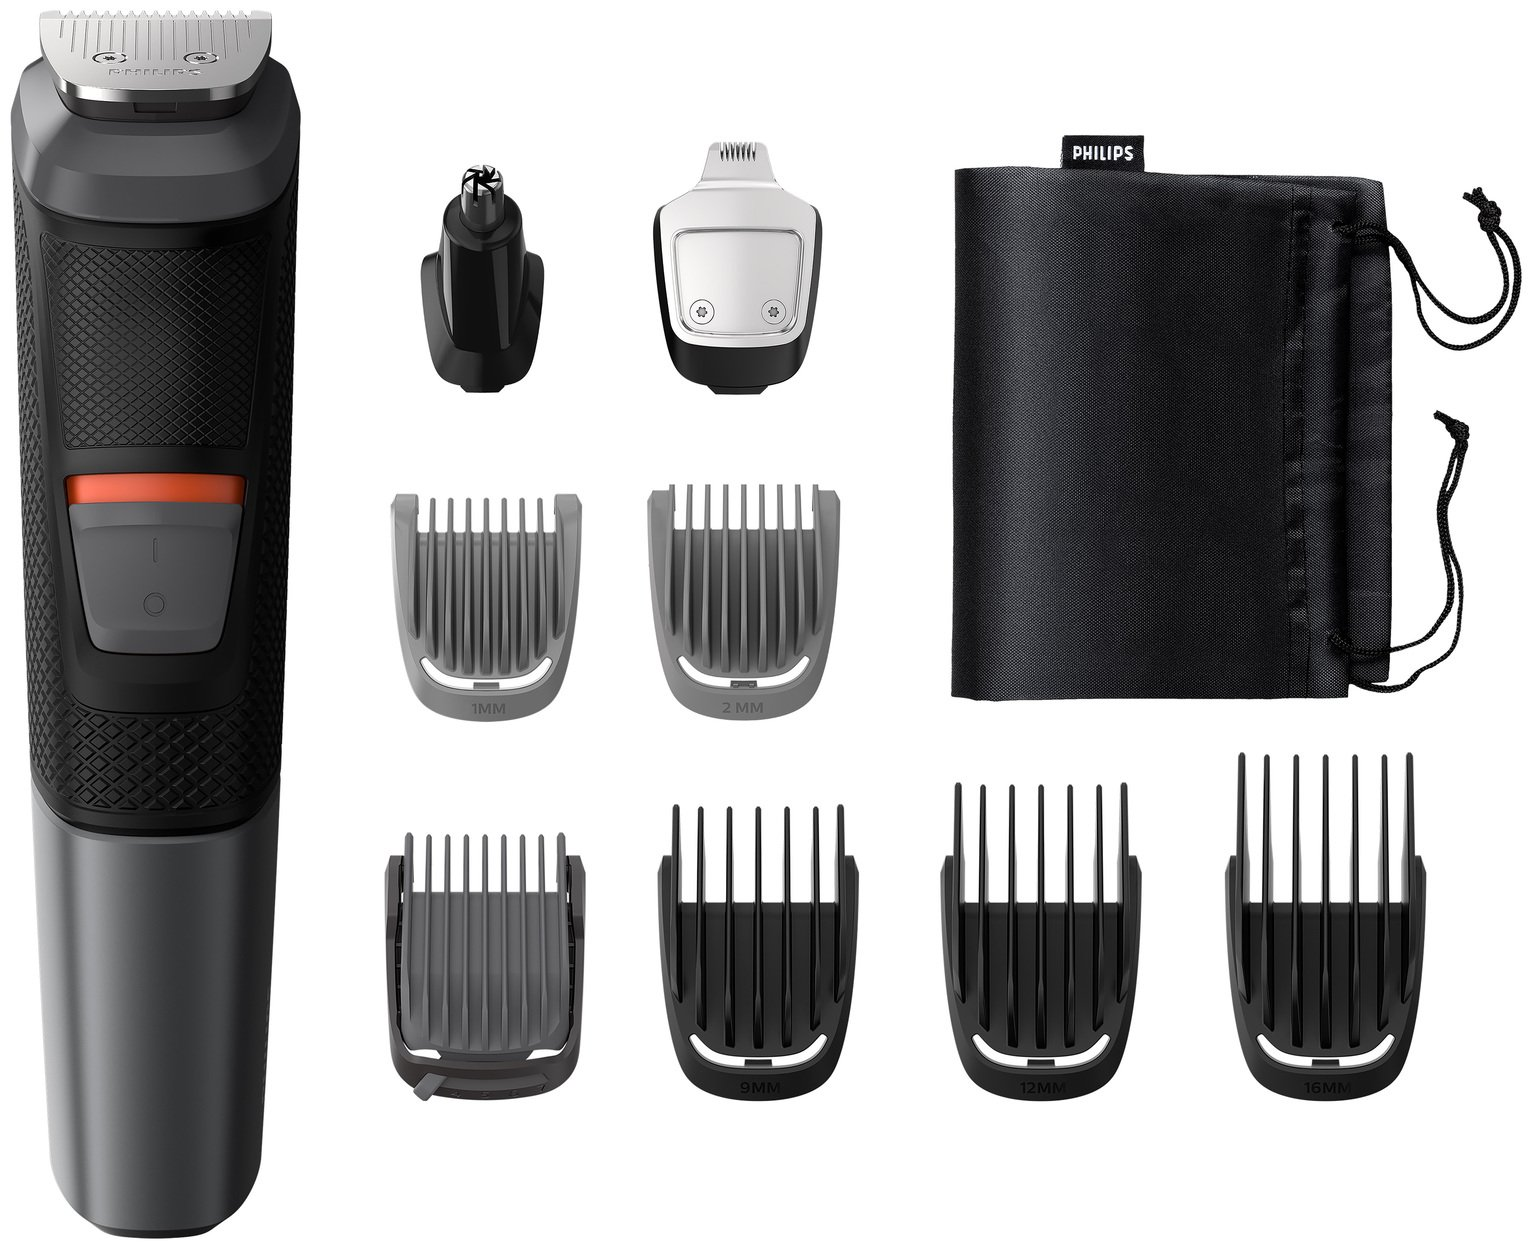 Philips 9-in-1 Beard Trimmer and Hair Clipper MG5720/13